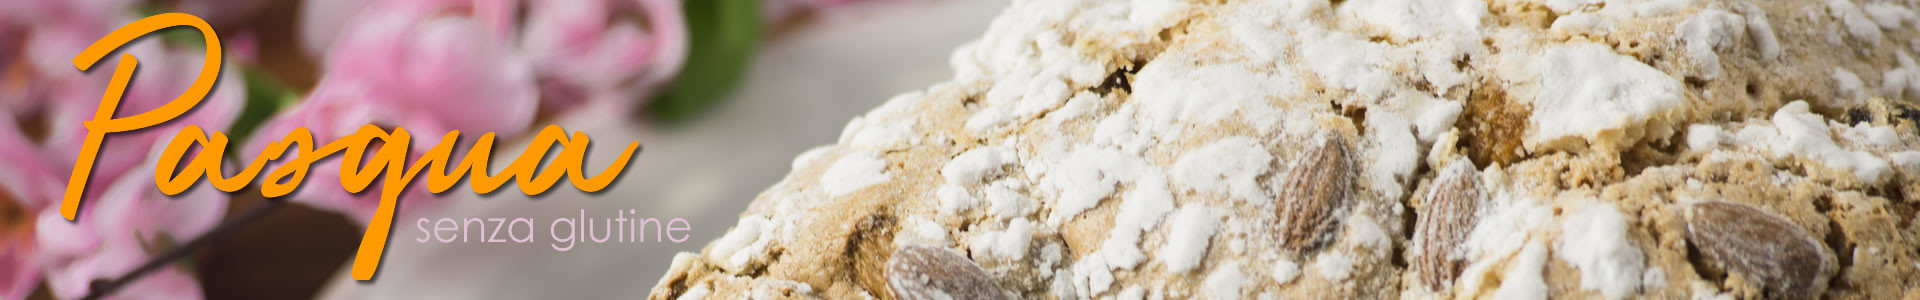 Special Occasions Gluten Free Shop Online from Italy